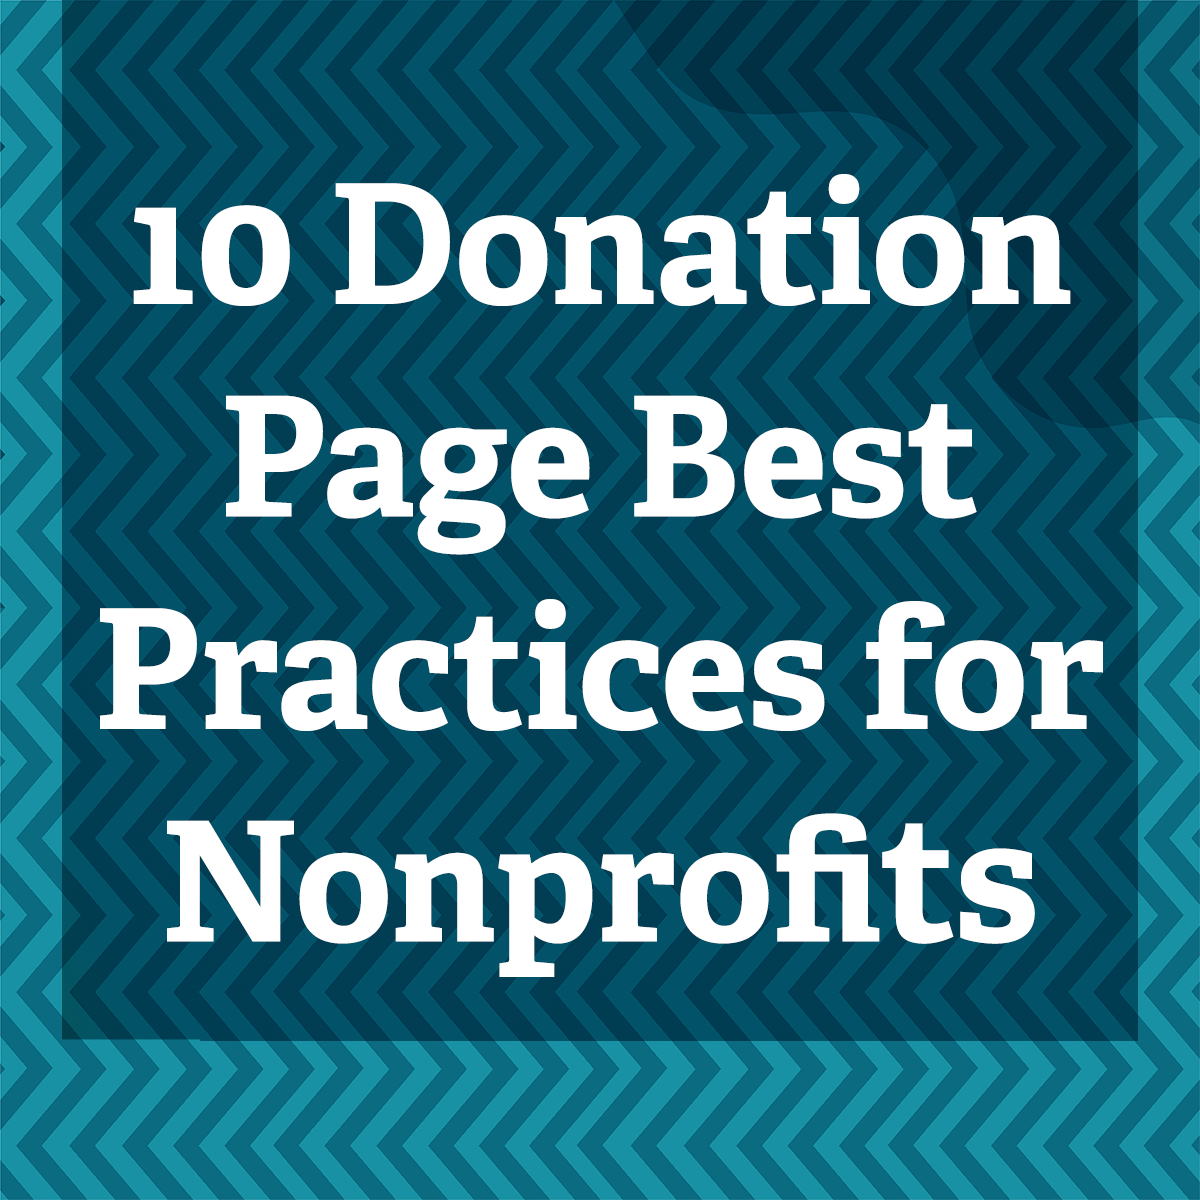 10 Donation Page Best Practices for Nonprofits via @nonprofitorgs